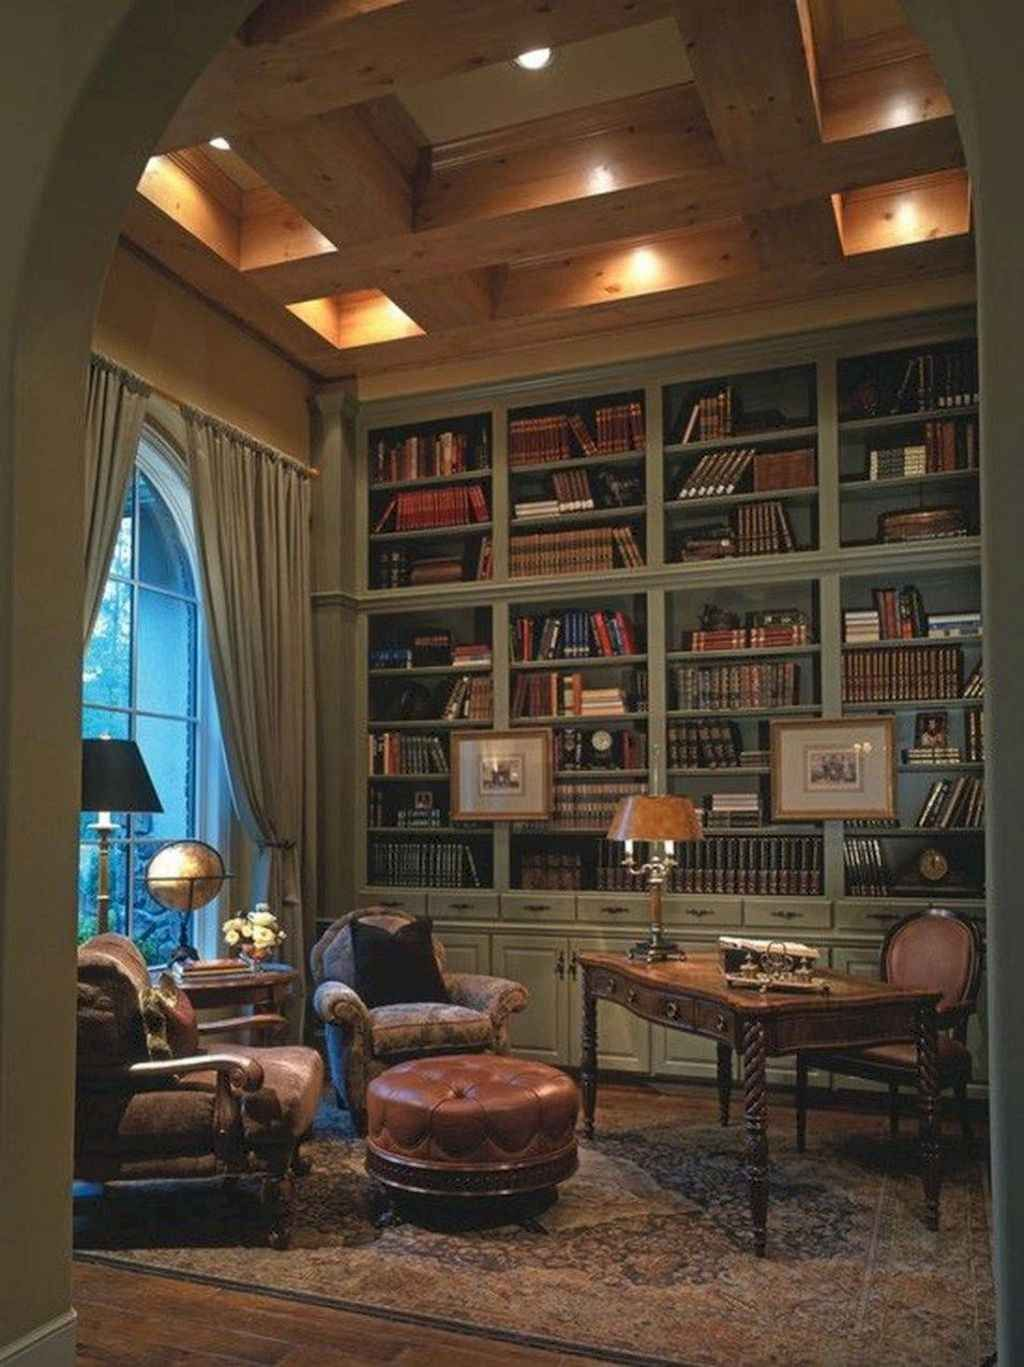 Living Room Library Design Ideas: 12 Amazing French Country Living Room Decor Ideas